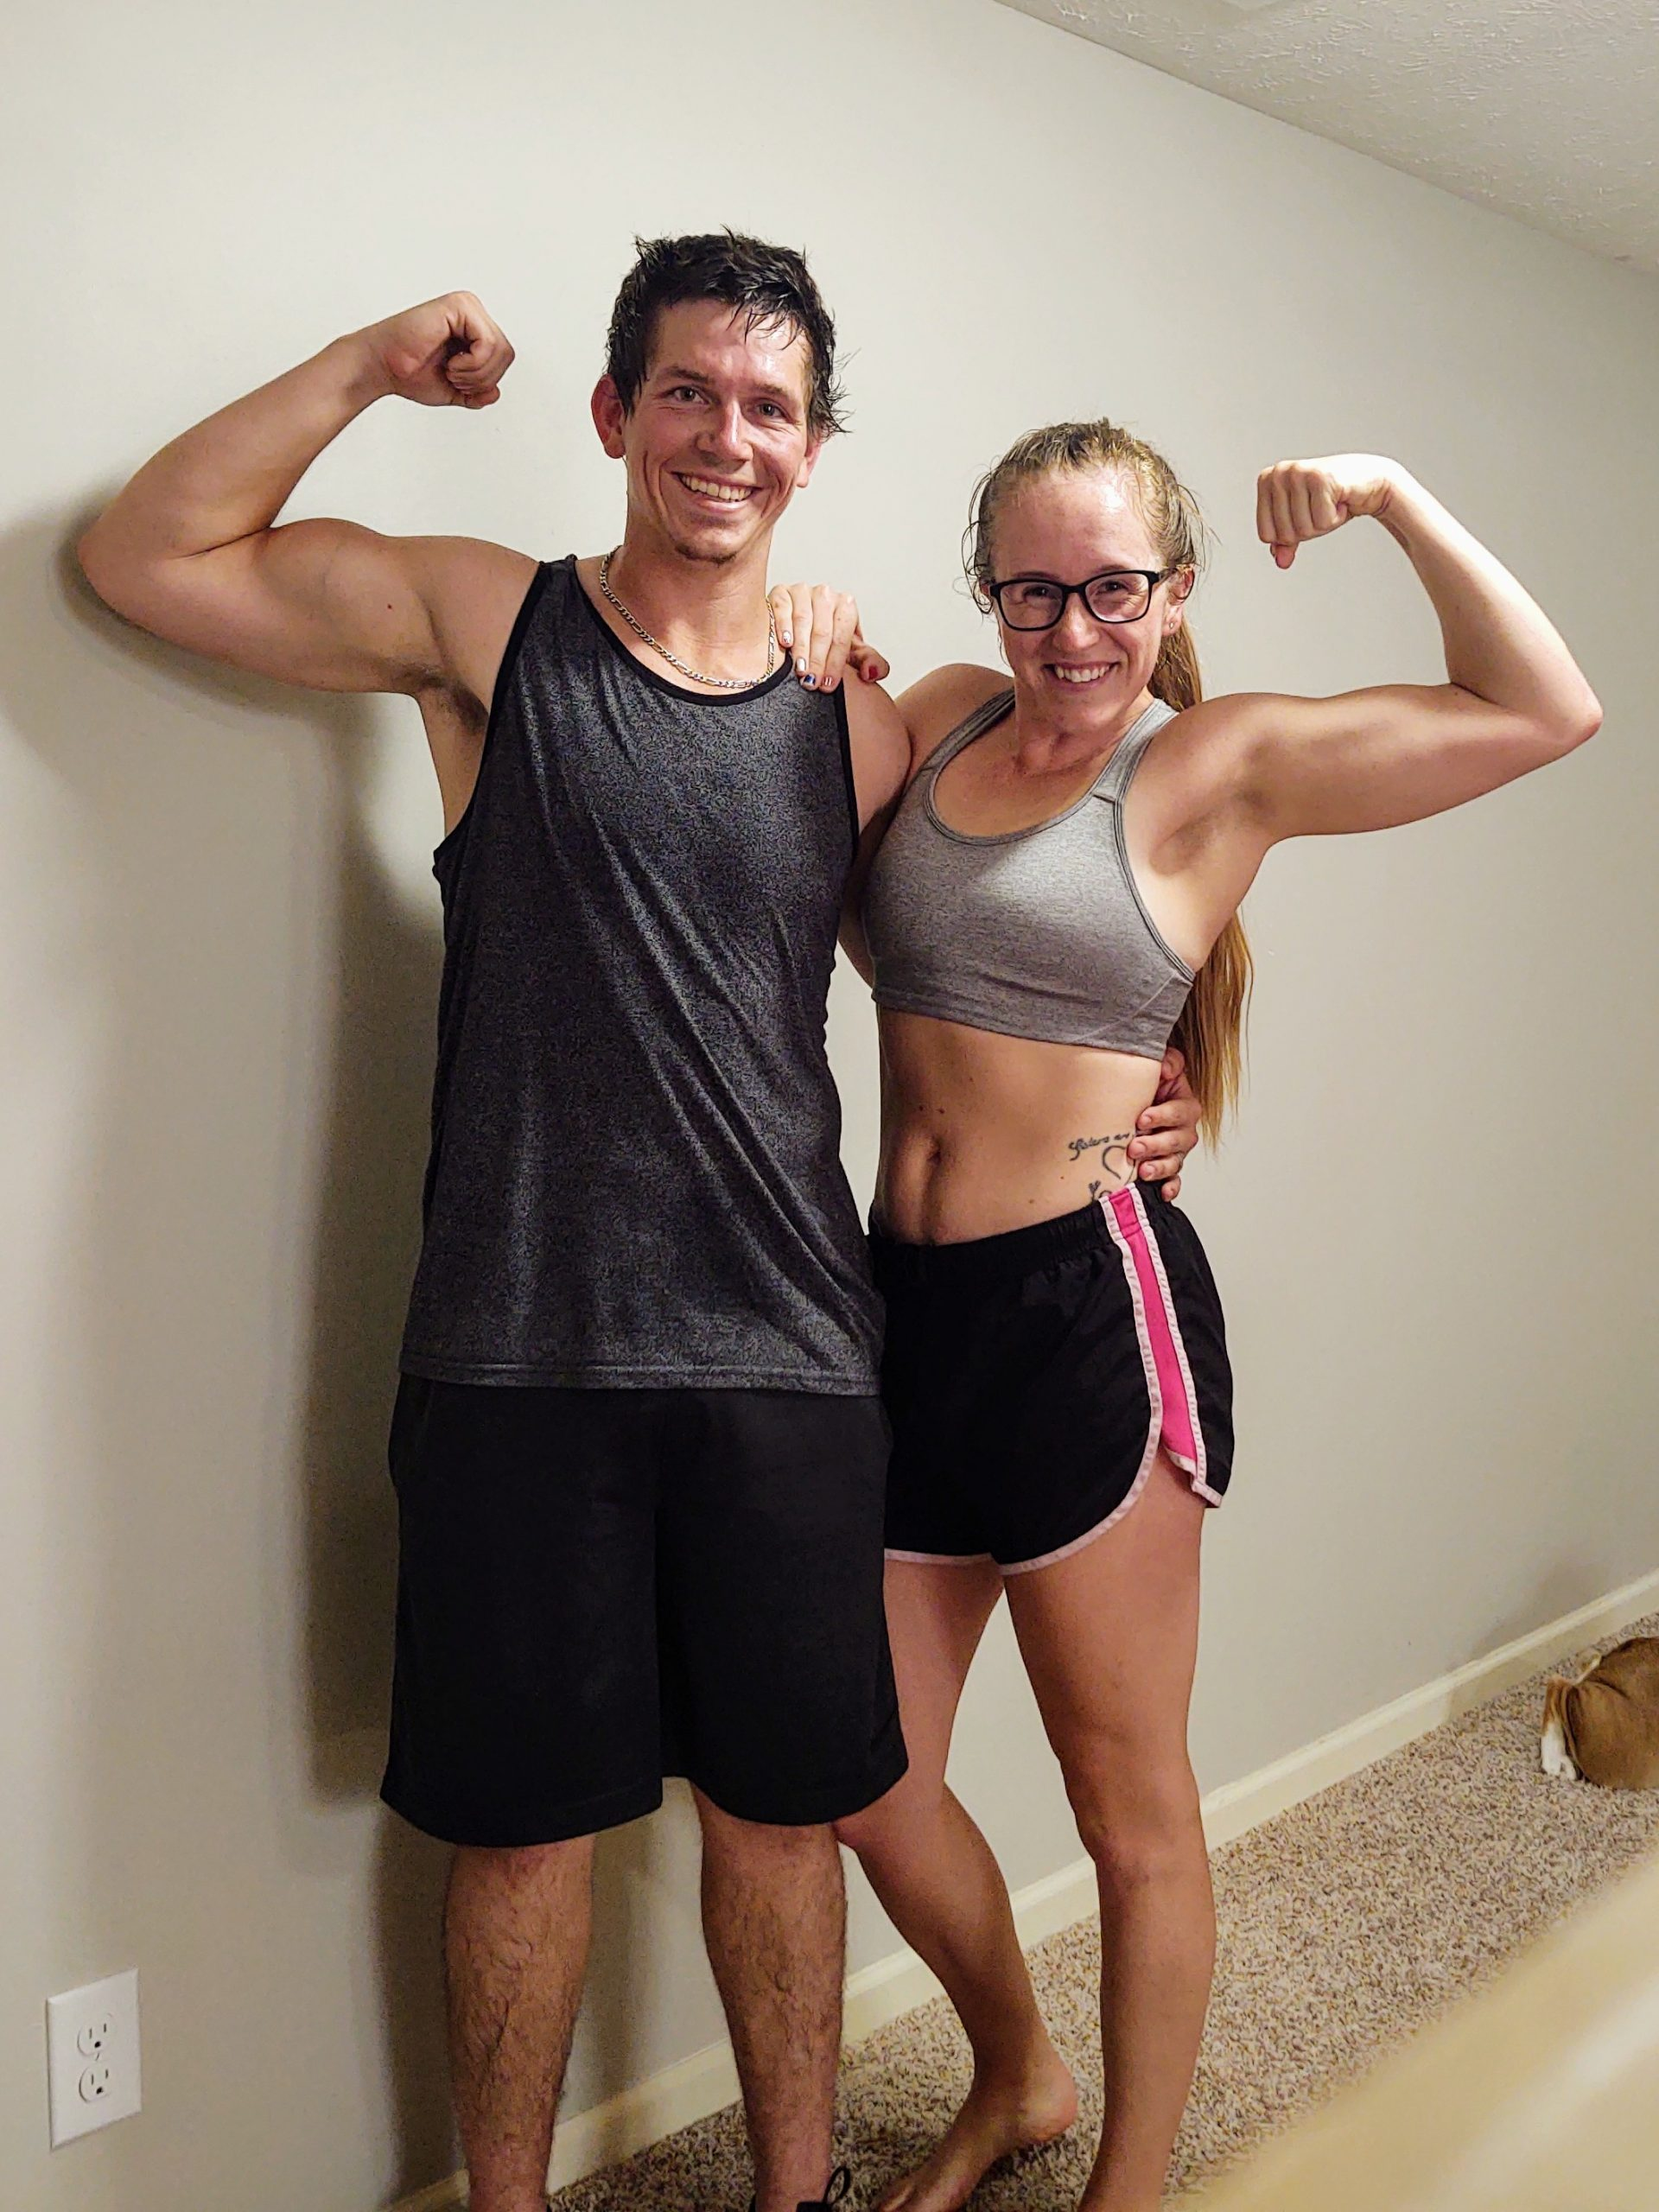 marriage and working out